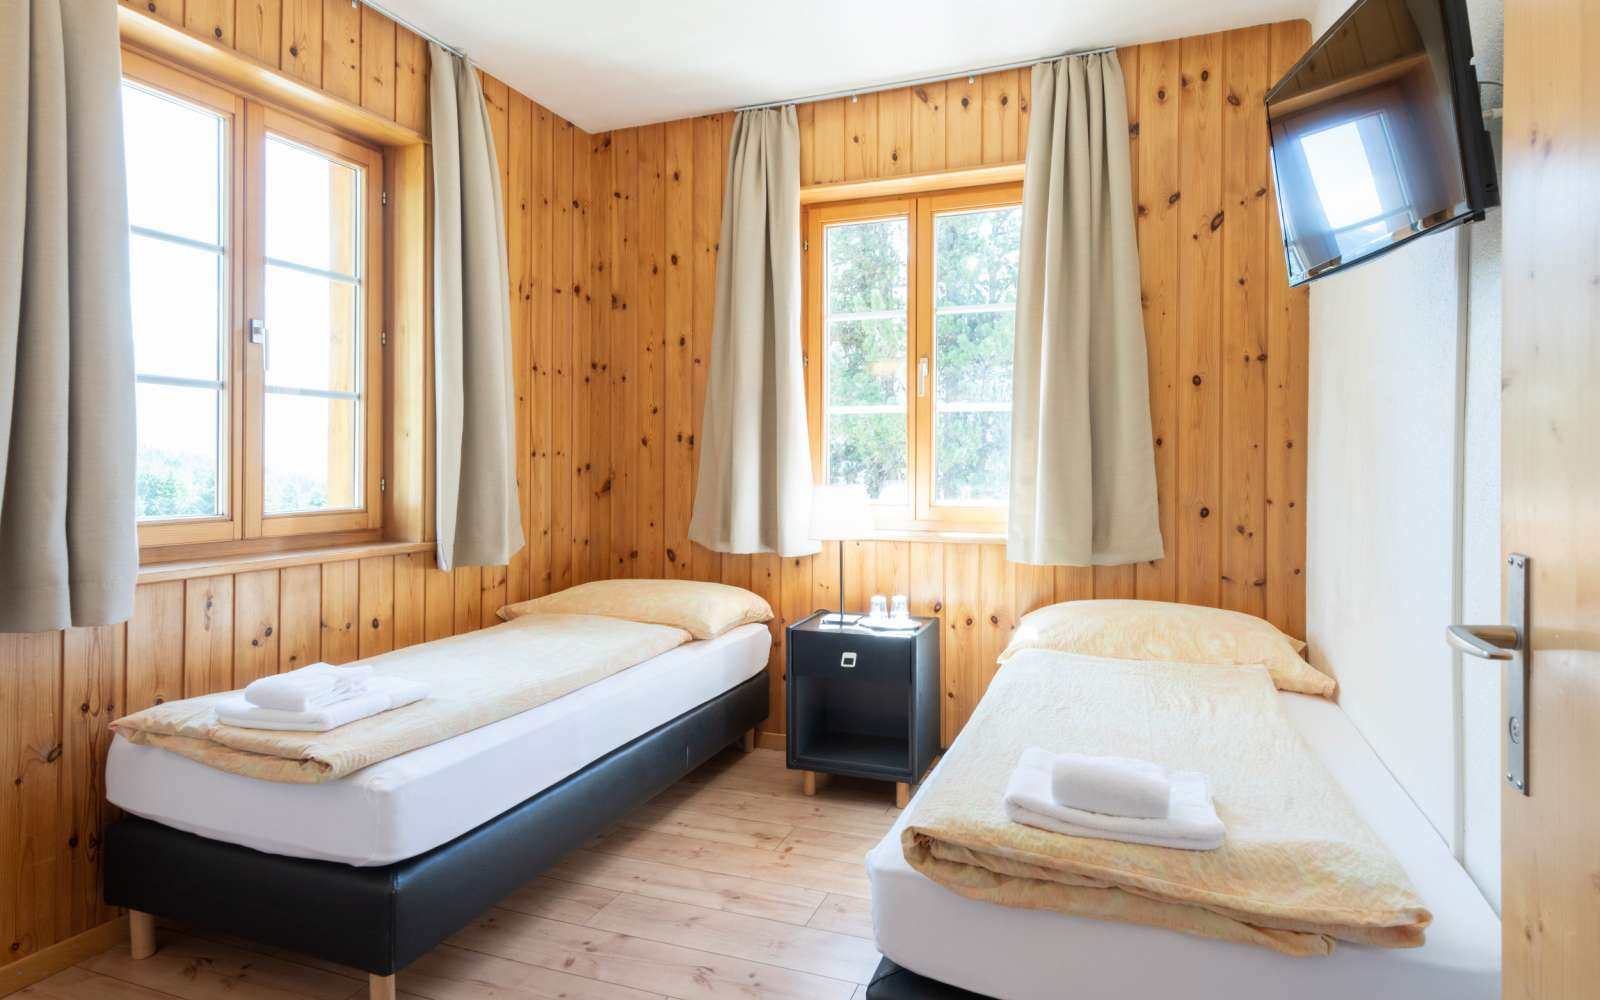 Doubleroom Hostel by Randolins St. Moritz Switzerland